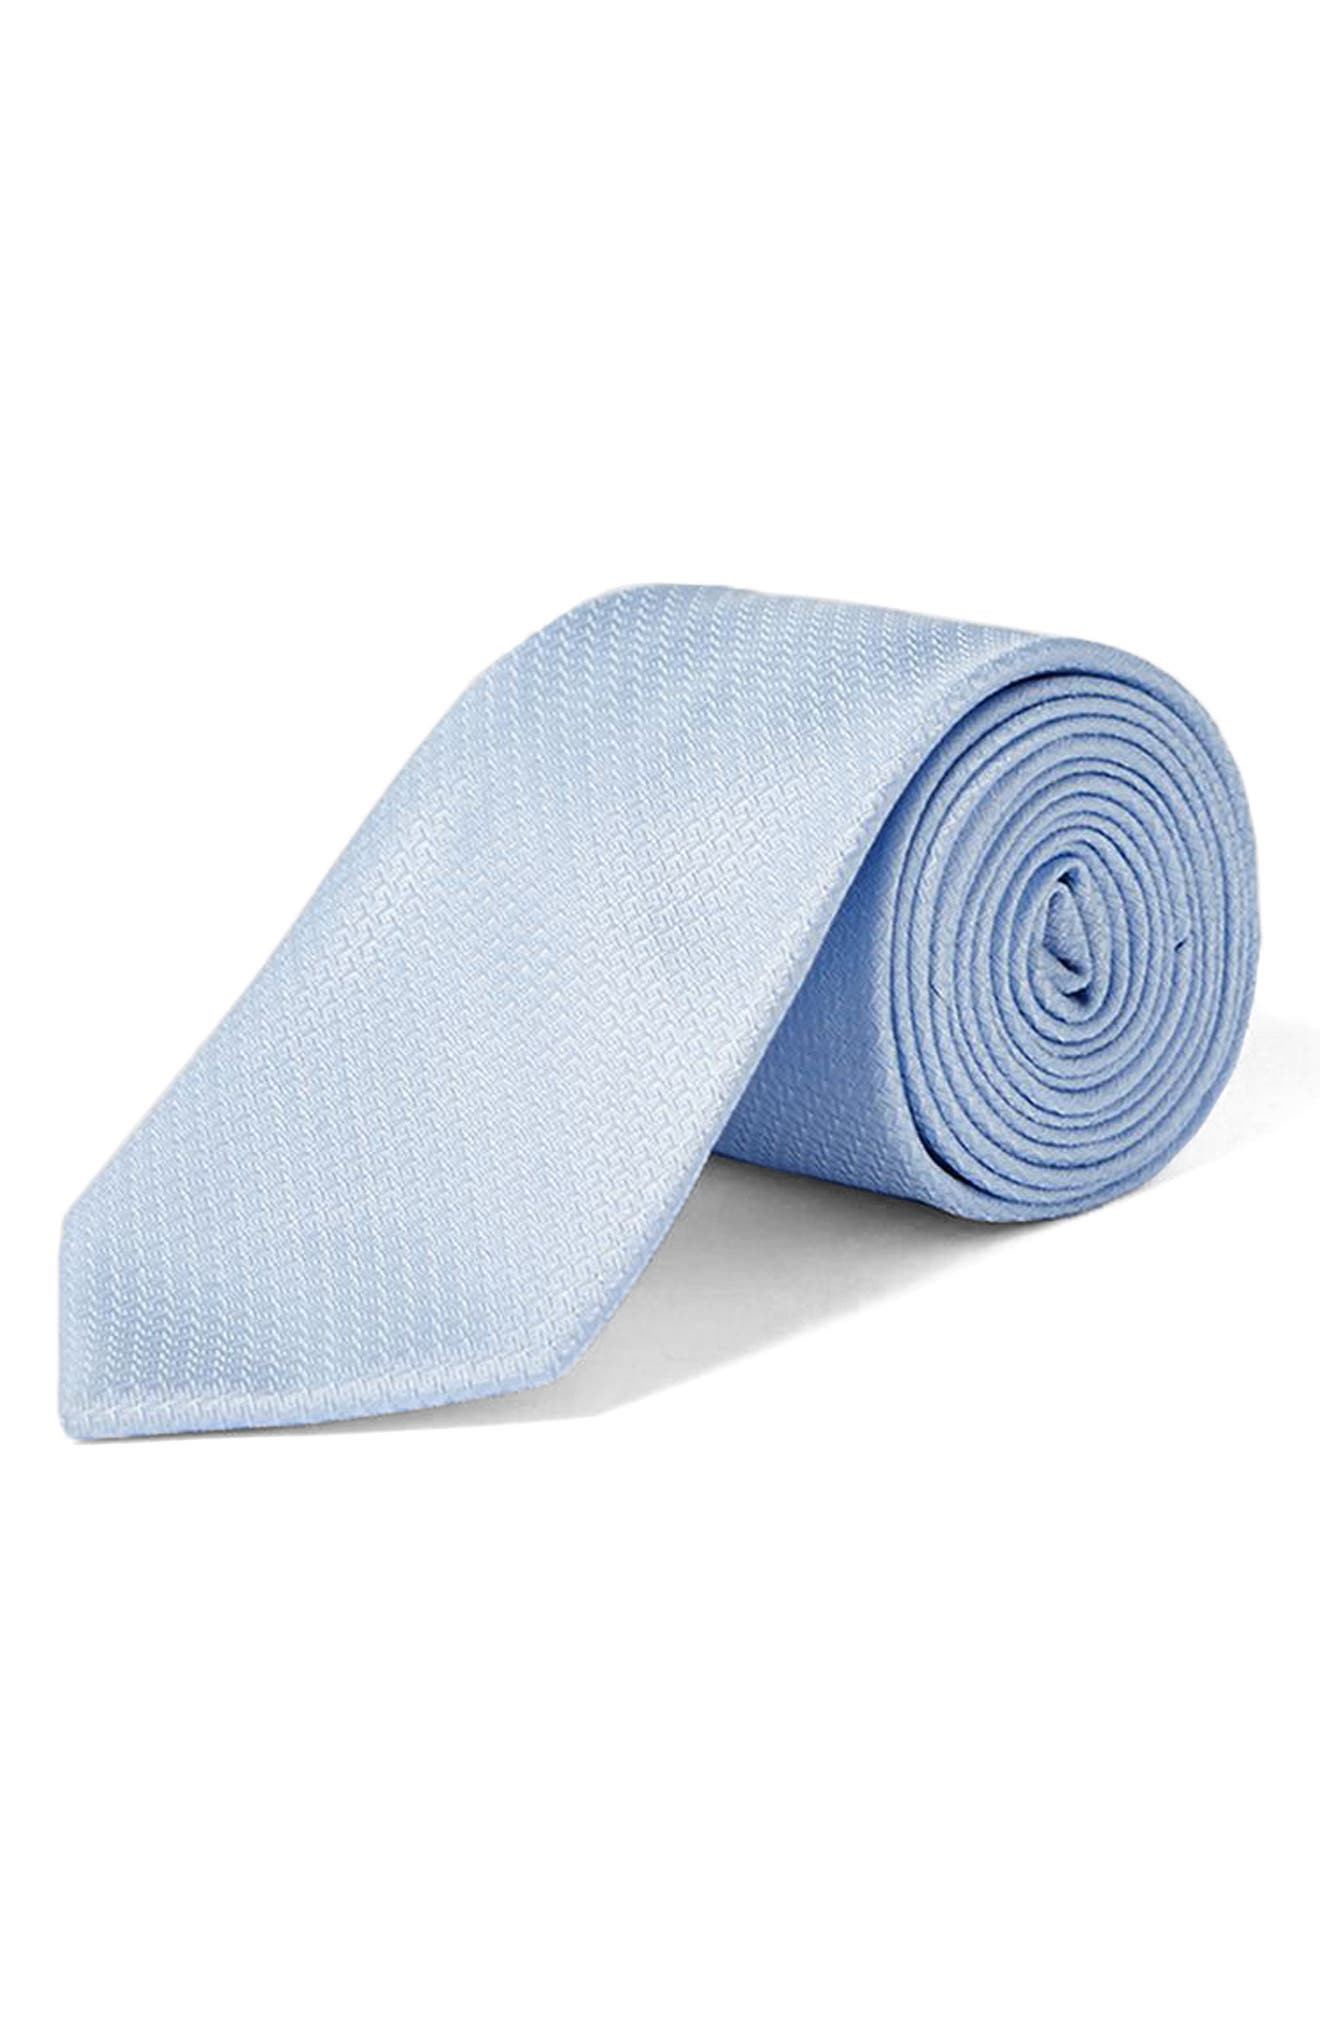 Textured Woven Tie,                         Main,                         color, Light Blue